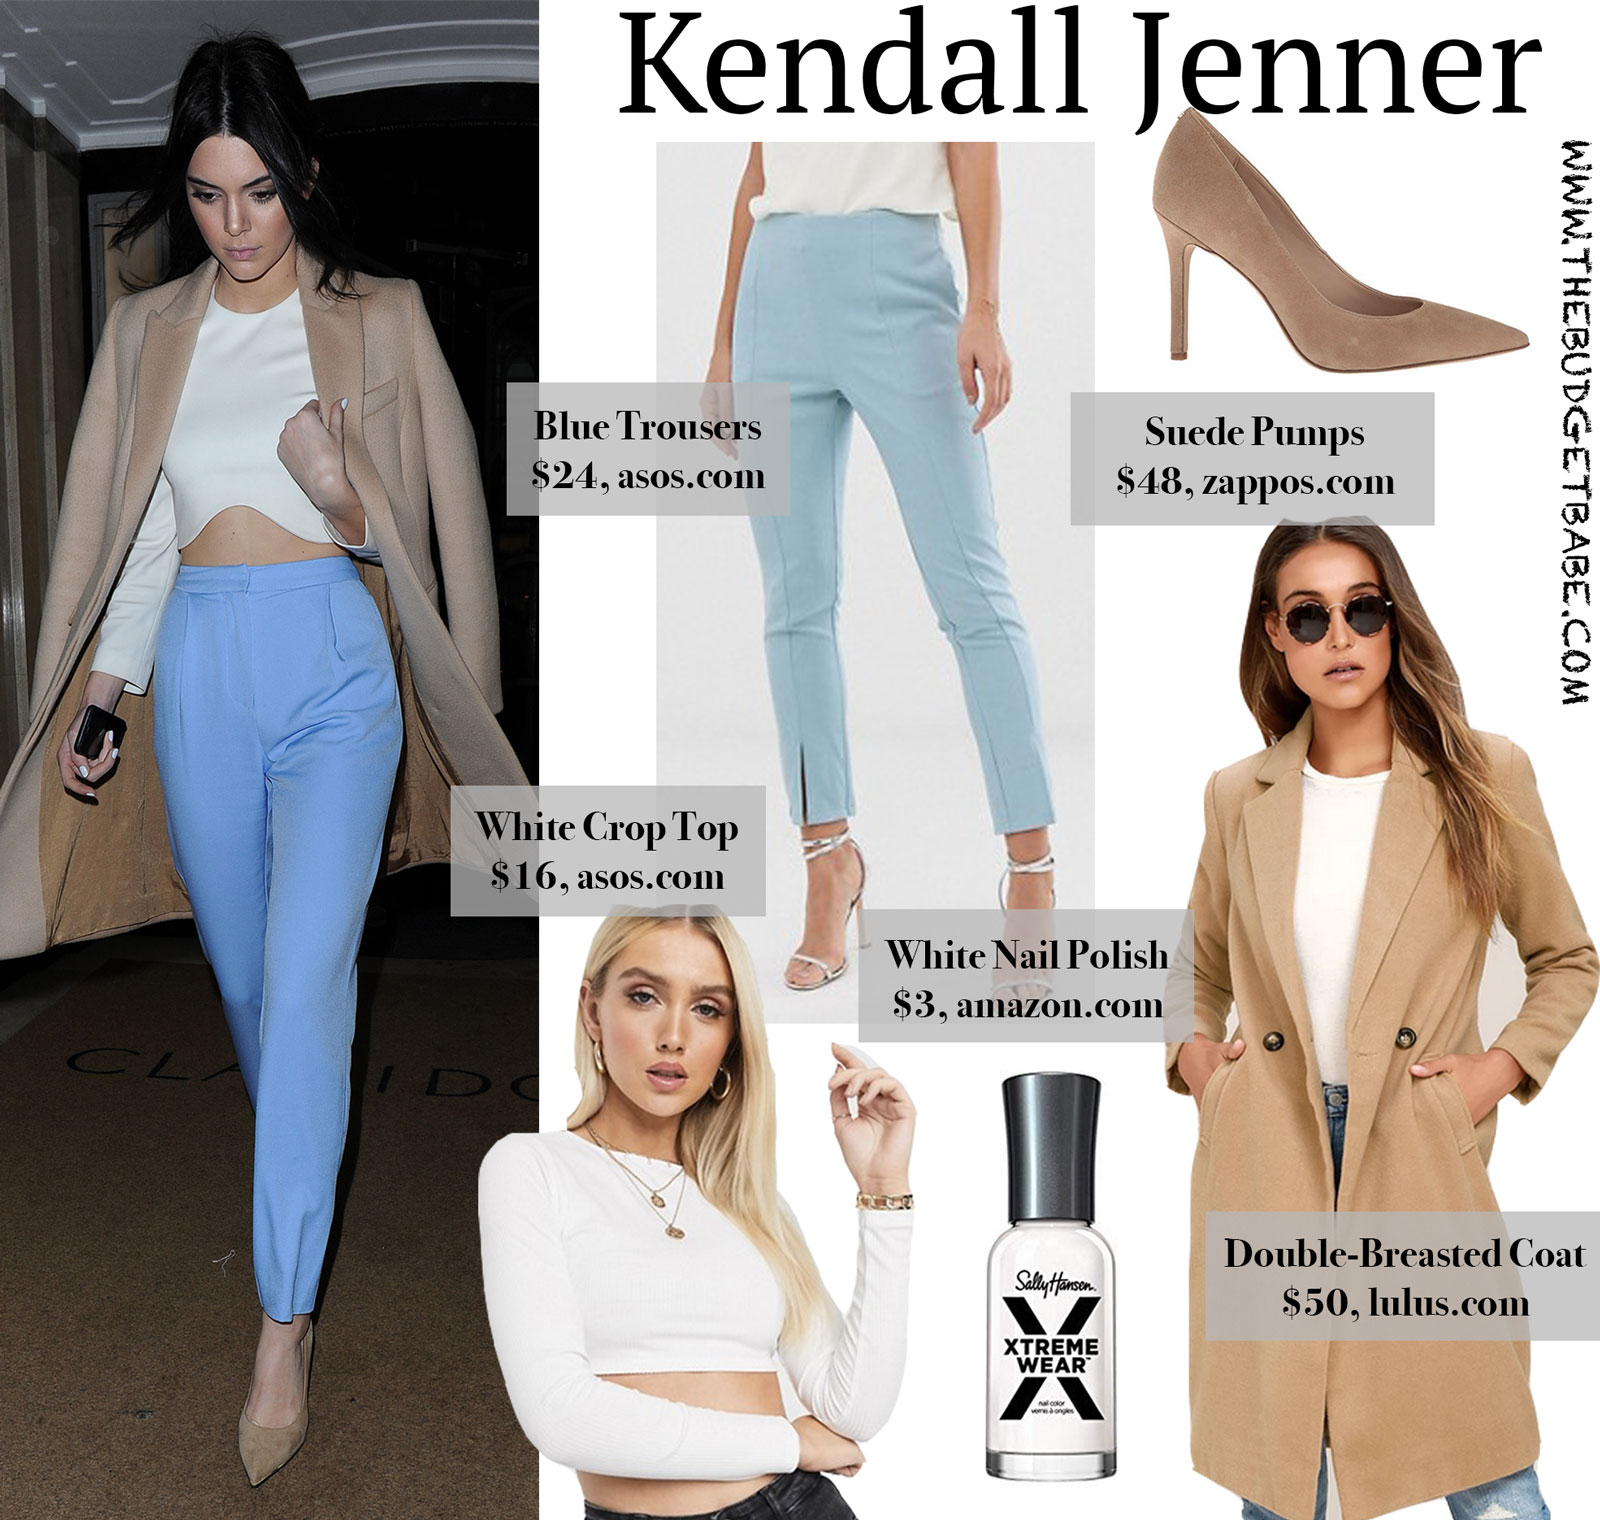 Kendall Jenner Blue Trousers Tan Coat Look for Less